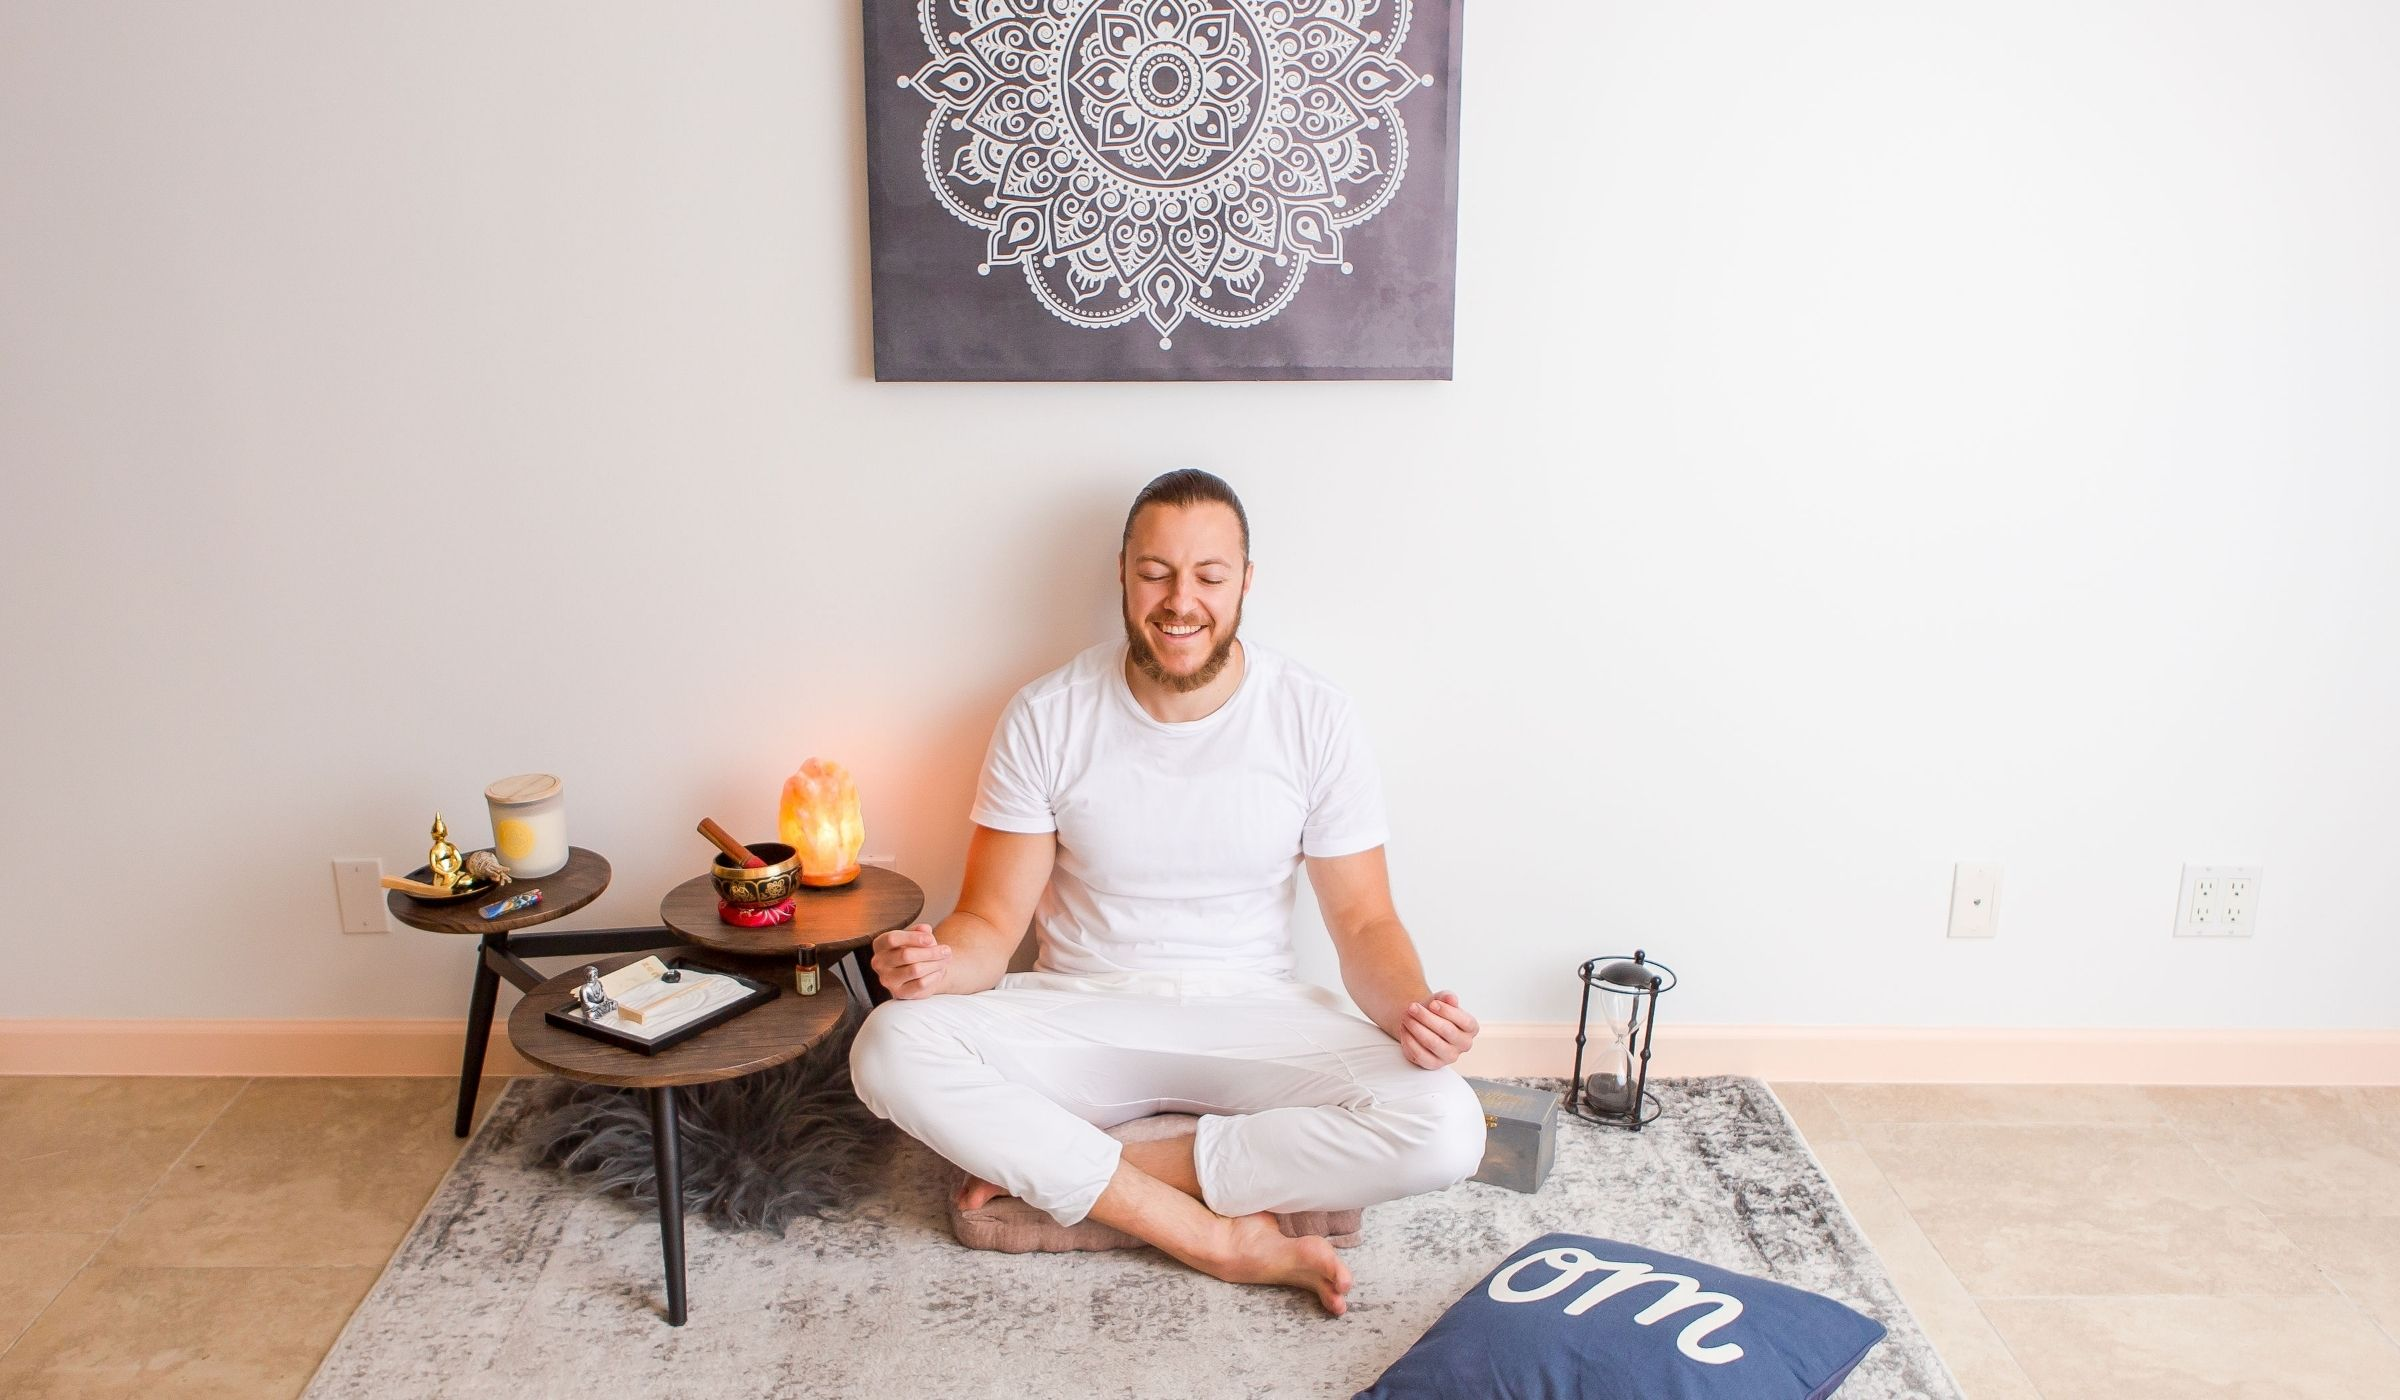 6 meditation tips to take your practice to the next level